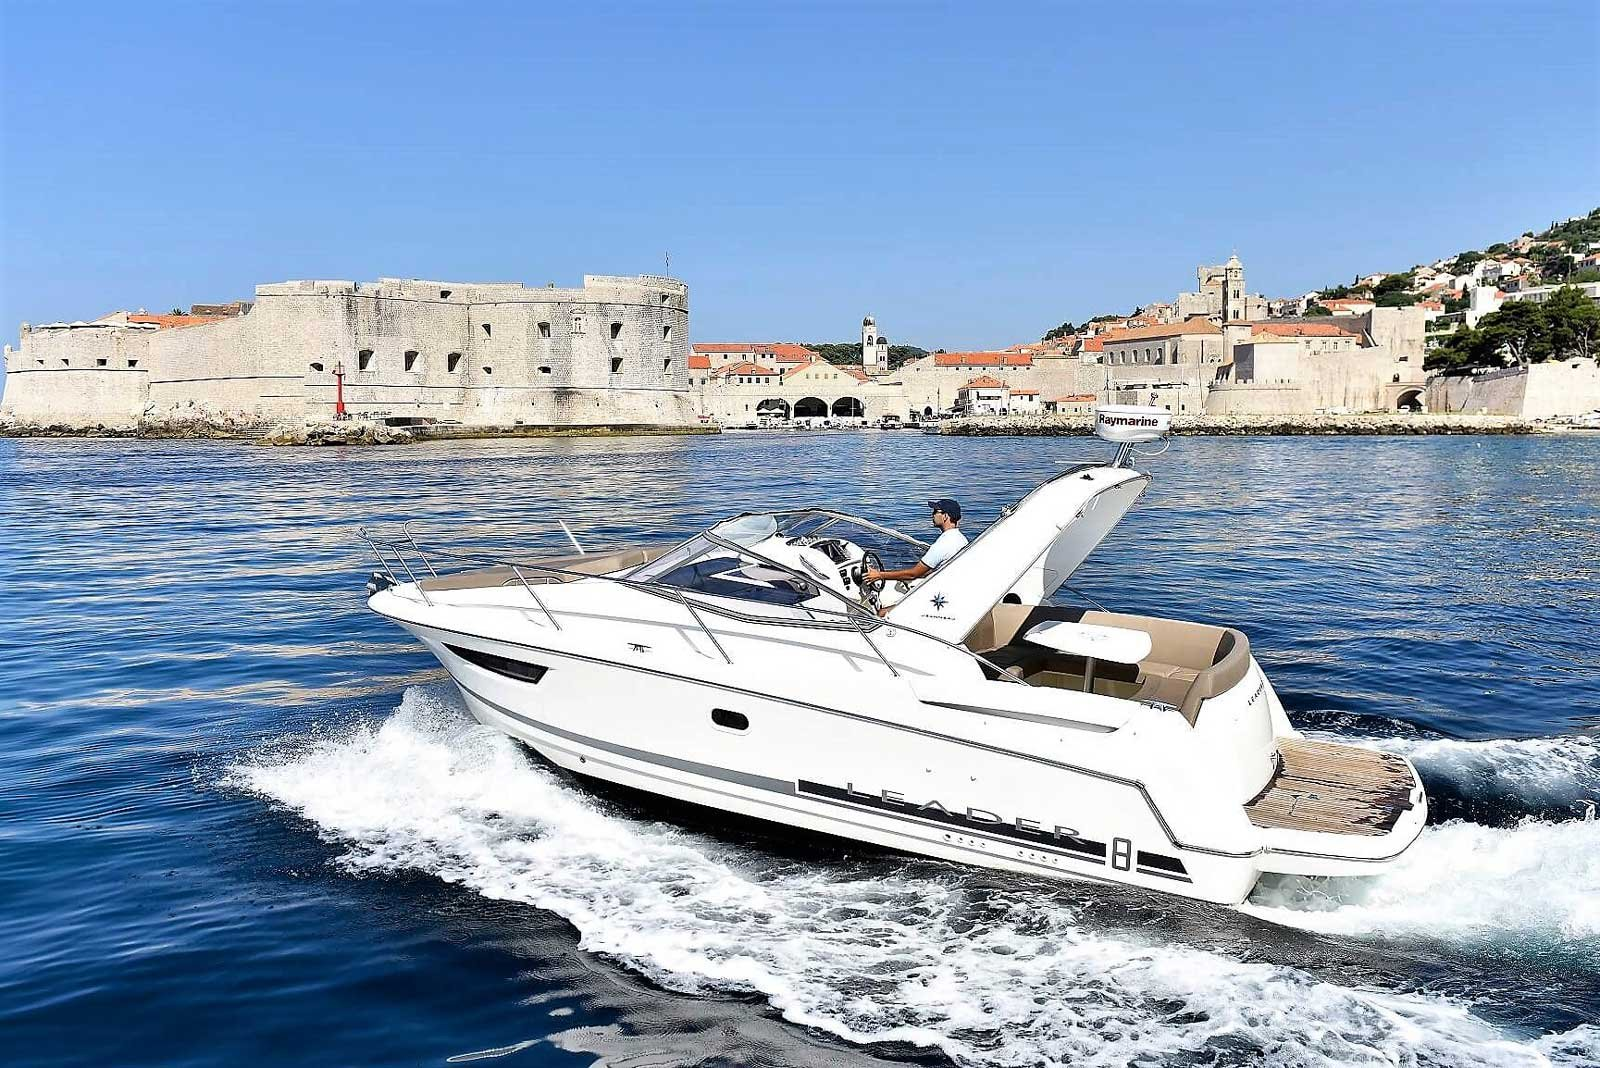 How to try yachting in Dubrovnik